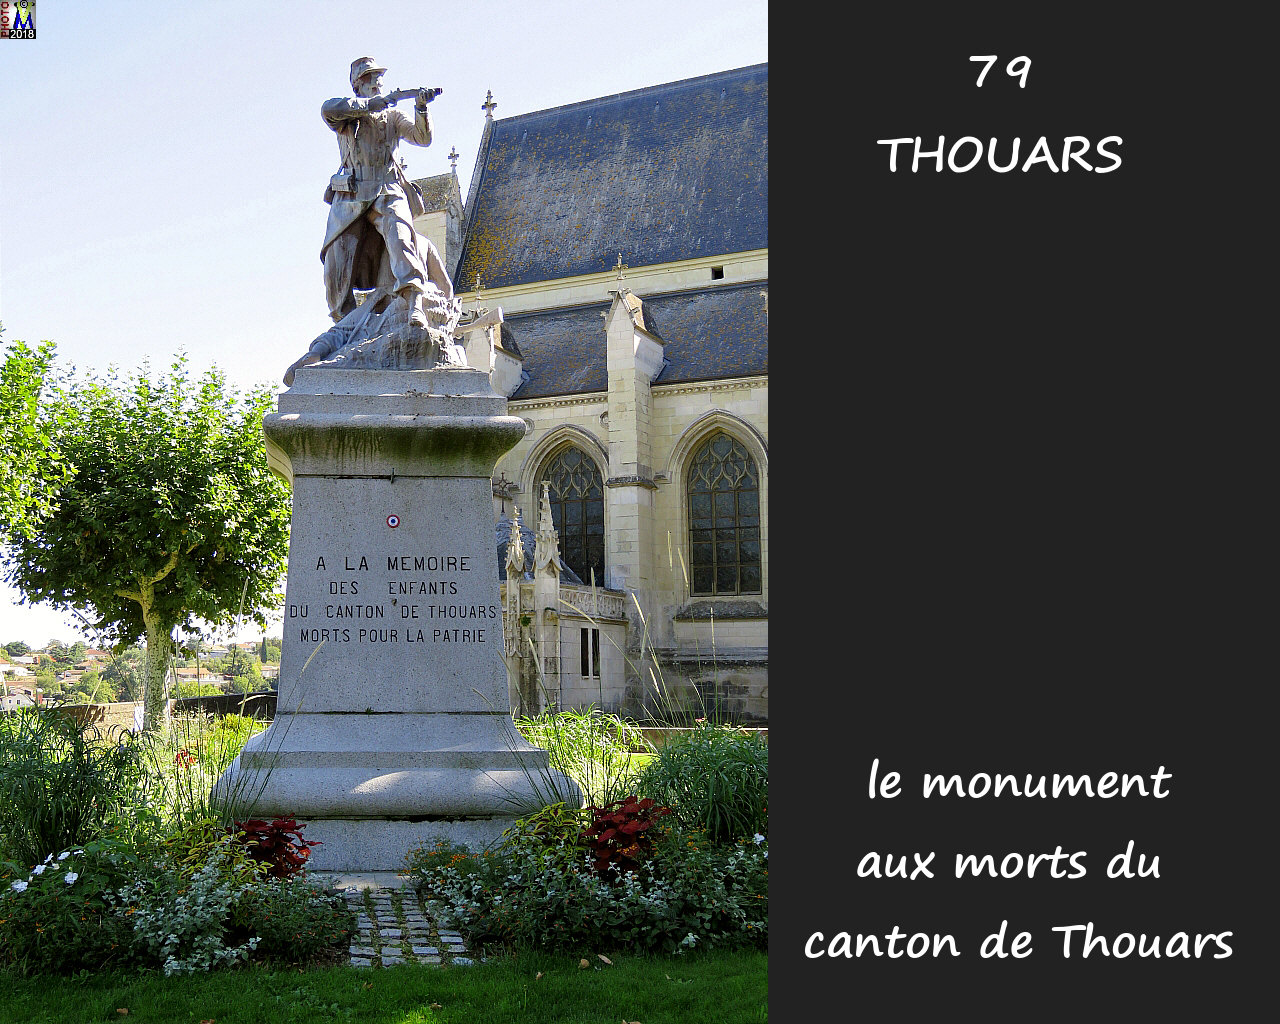 79THOUARS_morts_1000.jpg